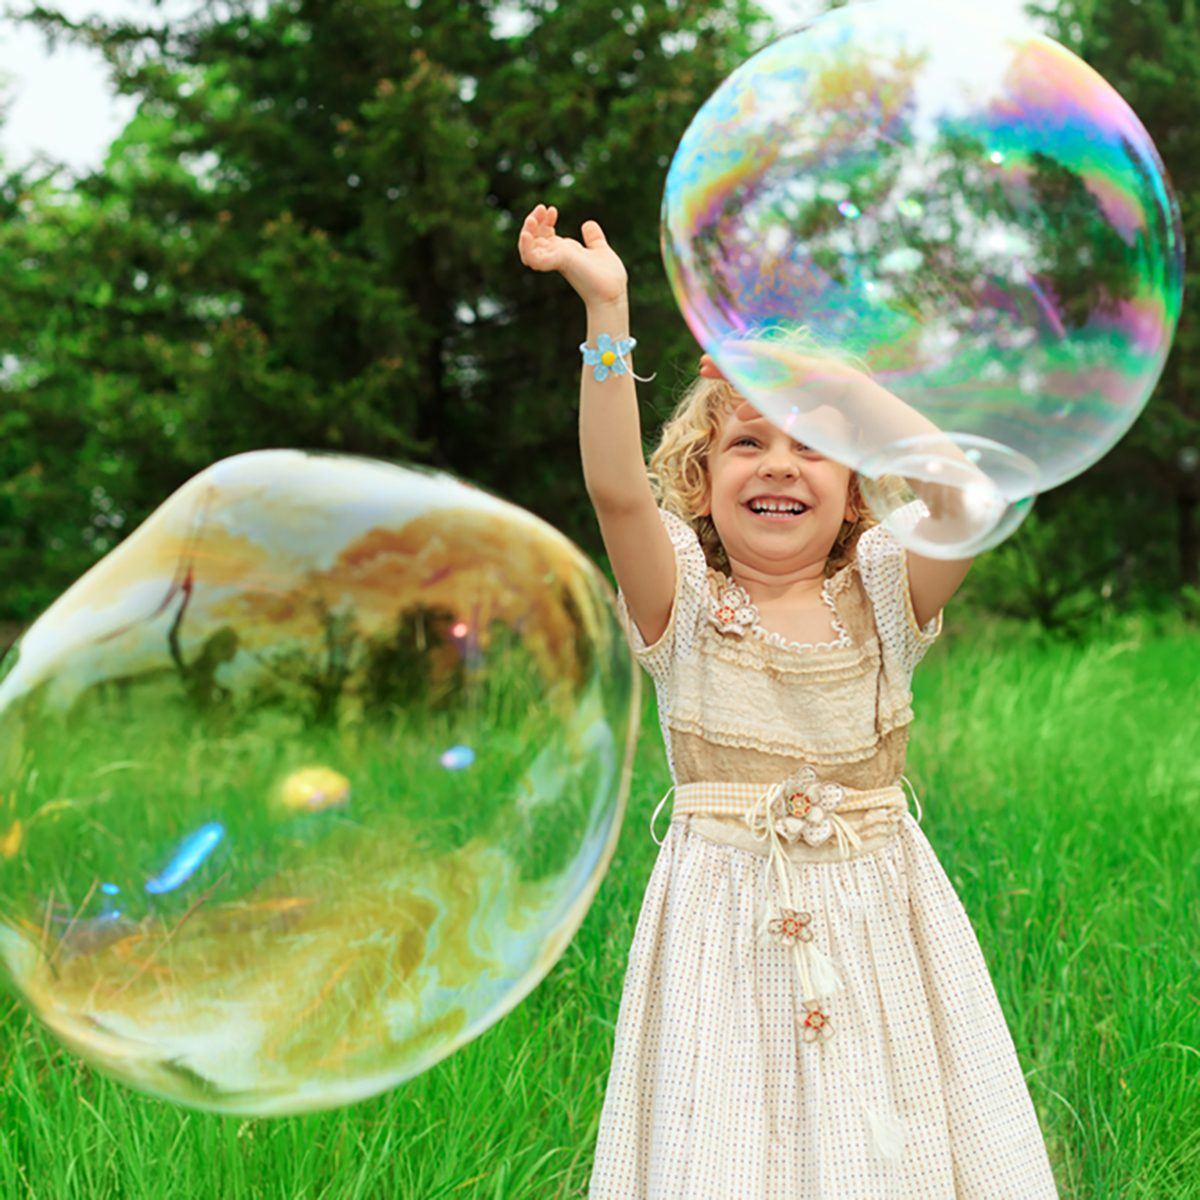 Pretty little girl is playing with big bubbles in a park